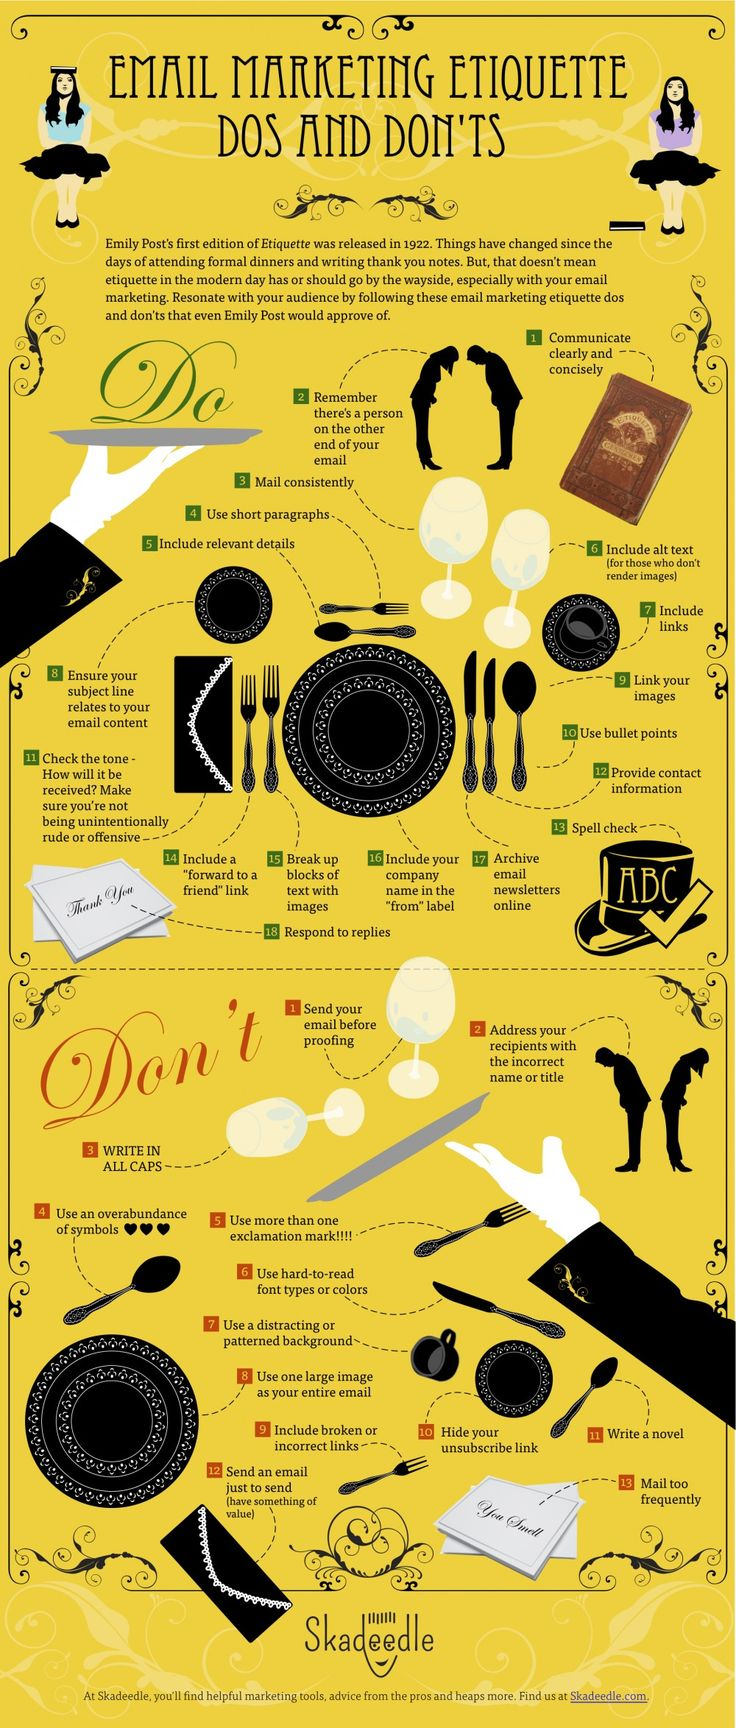 Email Marketing Etiquette Dos and Dont's Infographic www.socialmediamamma.com